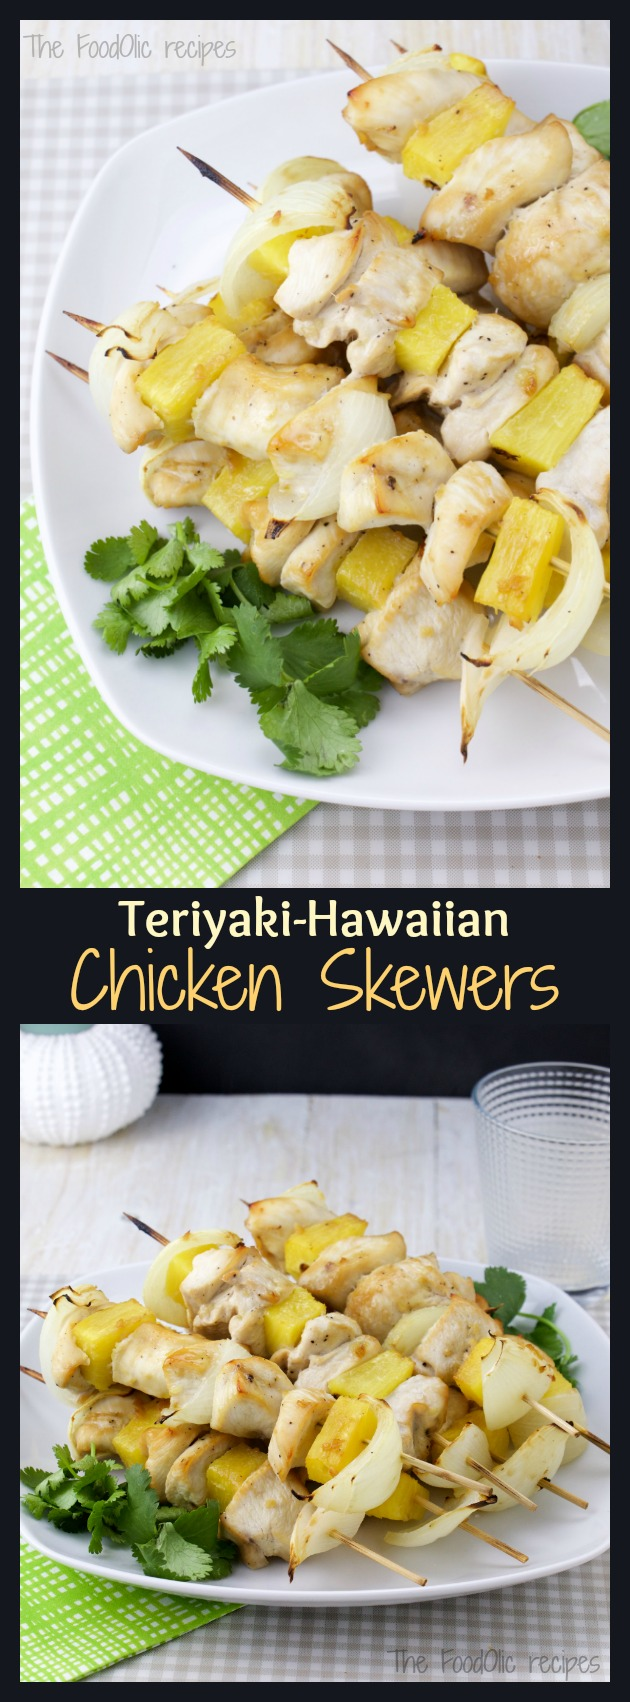 Light Hawaiian Teriyaki Chicken Skewers is a perfect match of 2 cultures; a Japanese touch consisting in a teriyaki marinated chicken with an Hawaiian flair with its grilled pineapple pieces. A dynamic fresh bite guaranteed!